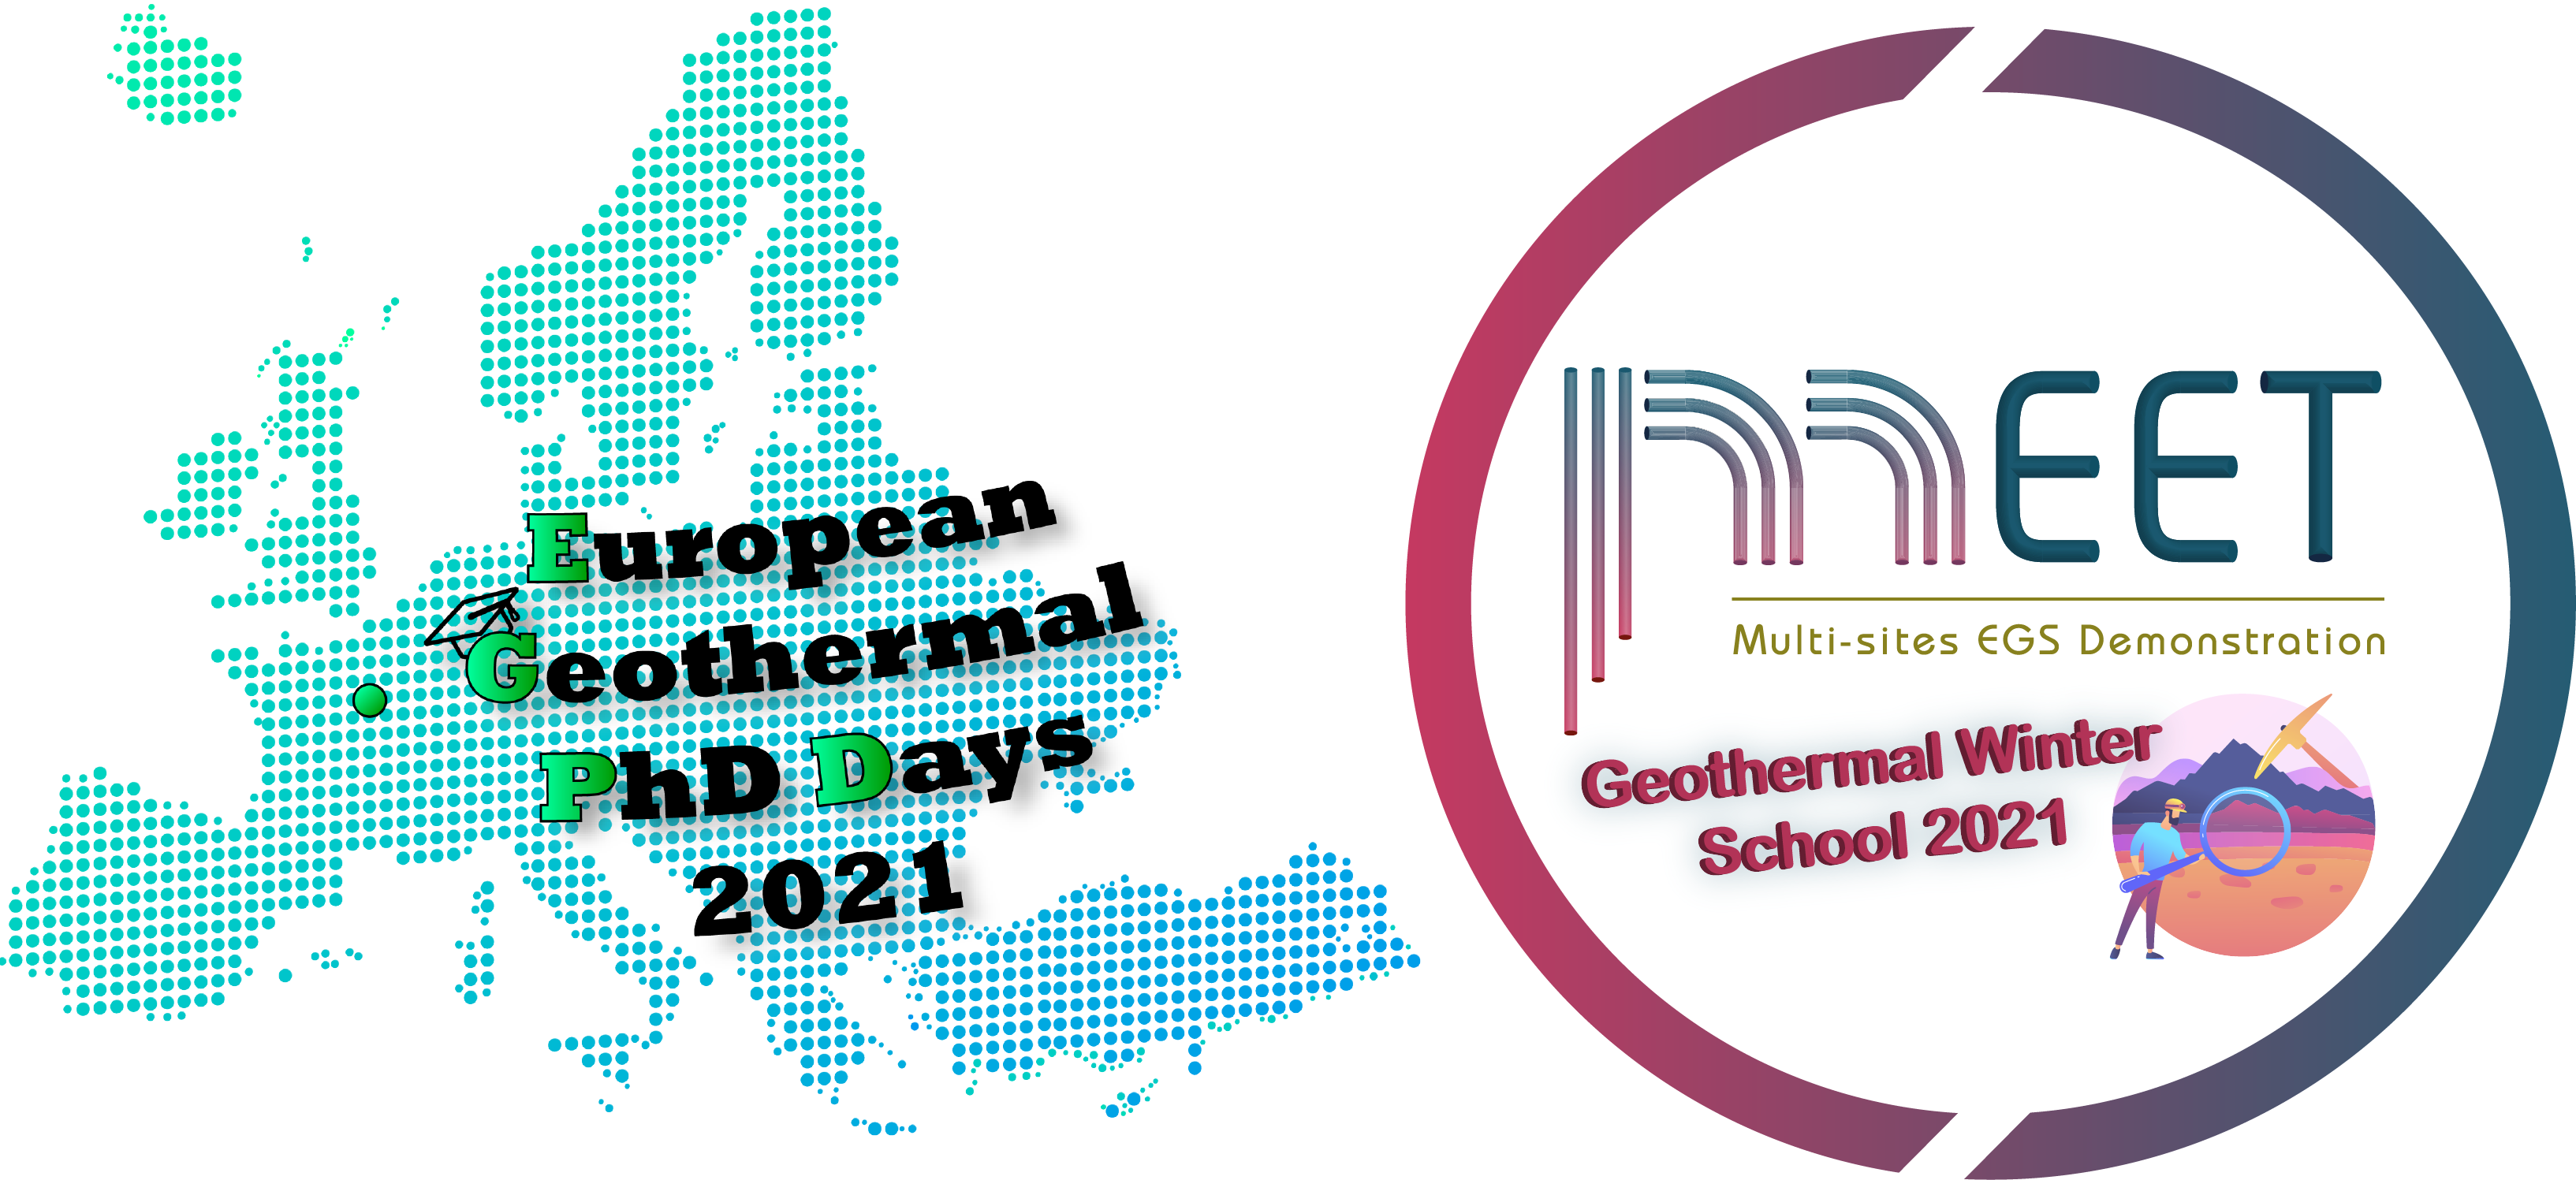 Participation in the European Geothermal PhD Days (EGPD) and Winter School